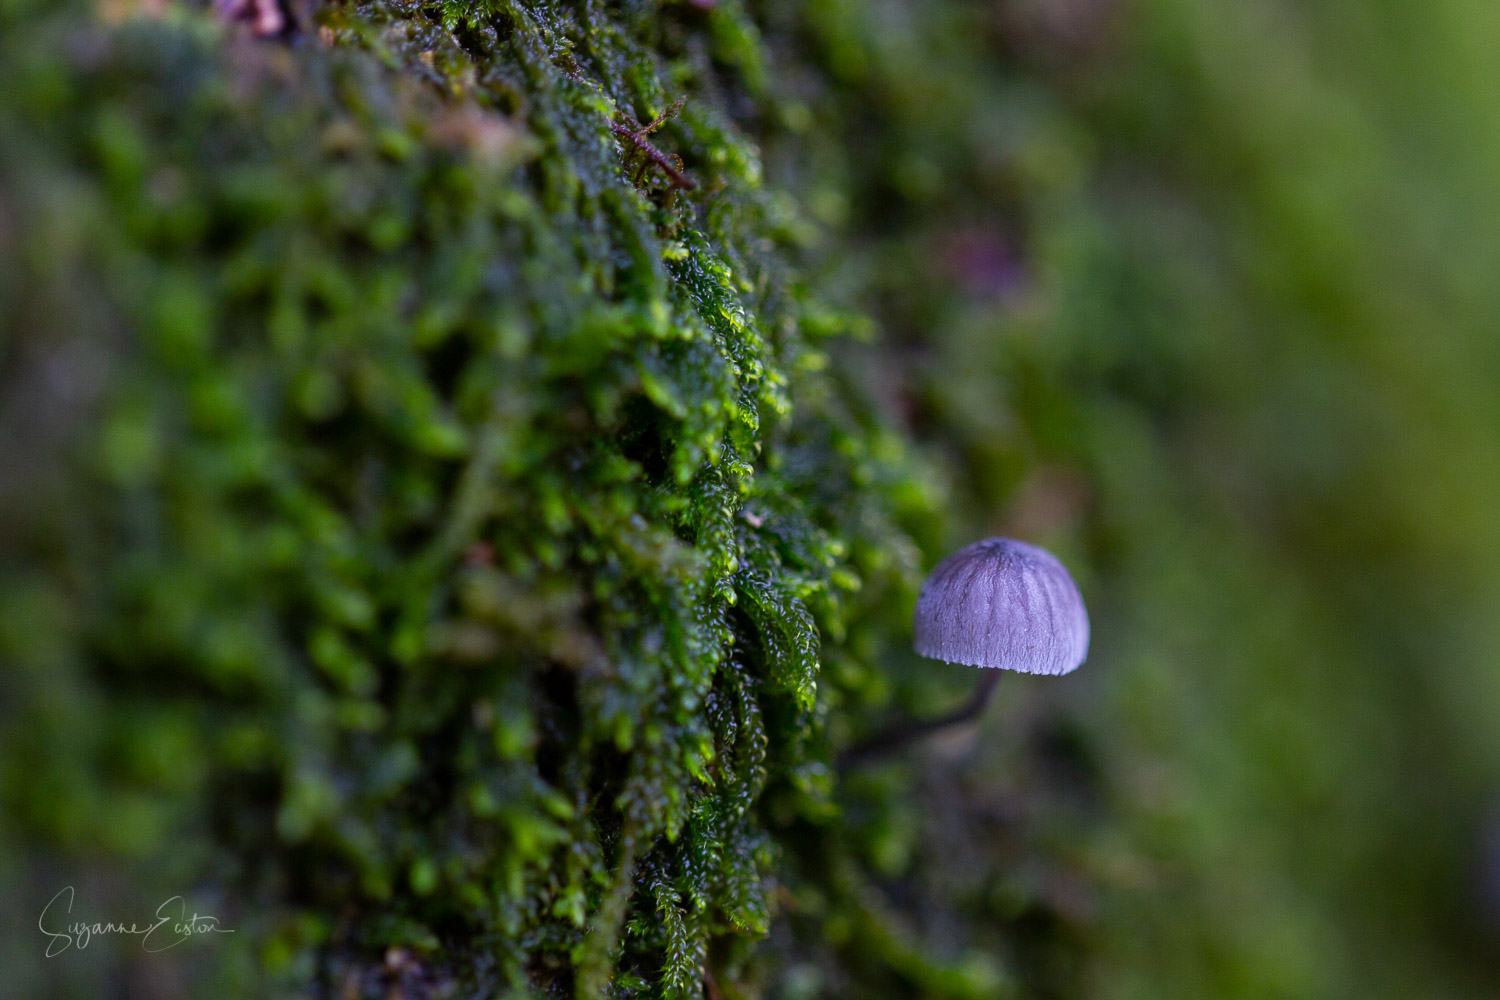 Mycena pseudocorticola blue mushroom with an umbrella cap growing on moss